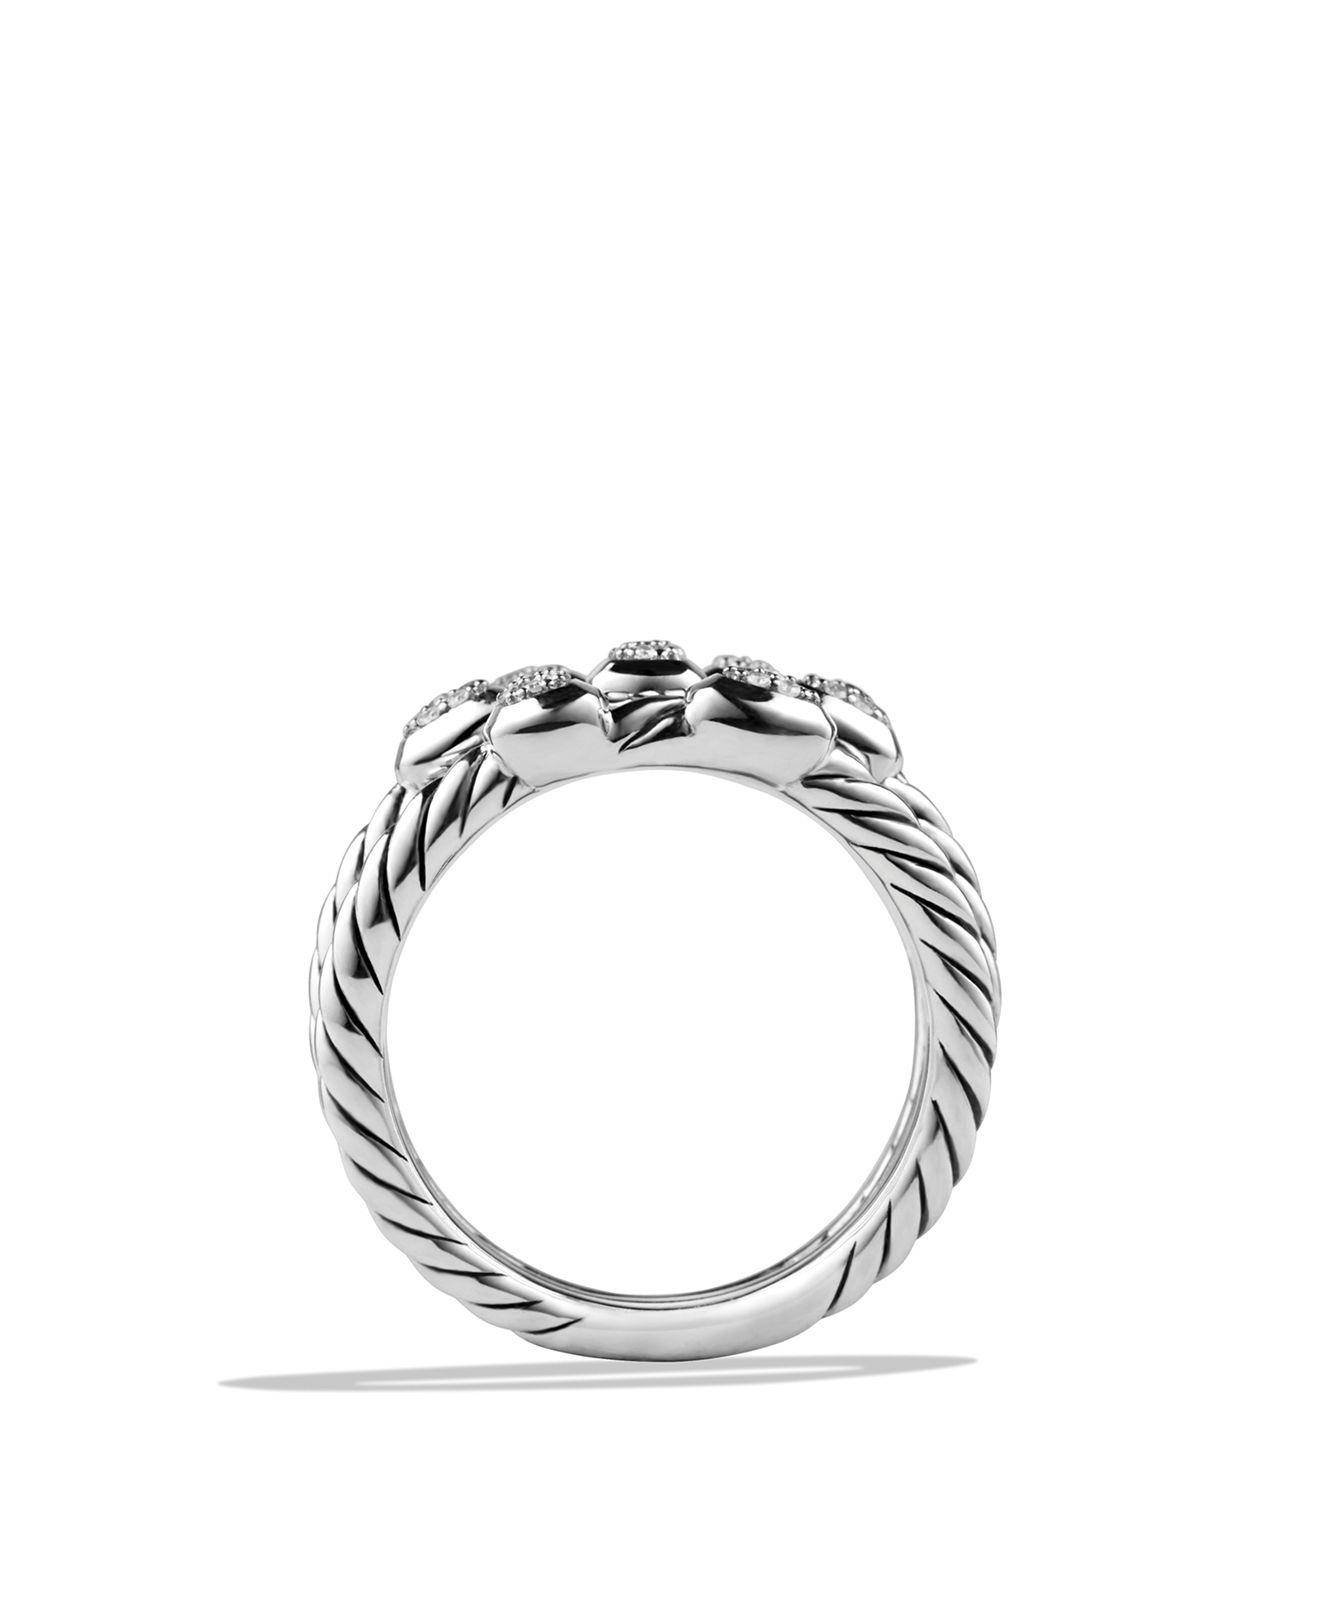 David Yurman Confetti Ring With Diamonds In Metallic | Lyst Pertaining To Bloomingdales Wedding Bands (View 11 of 16)